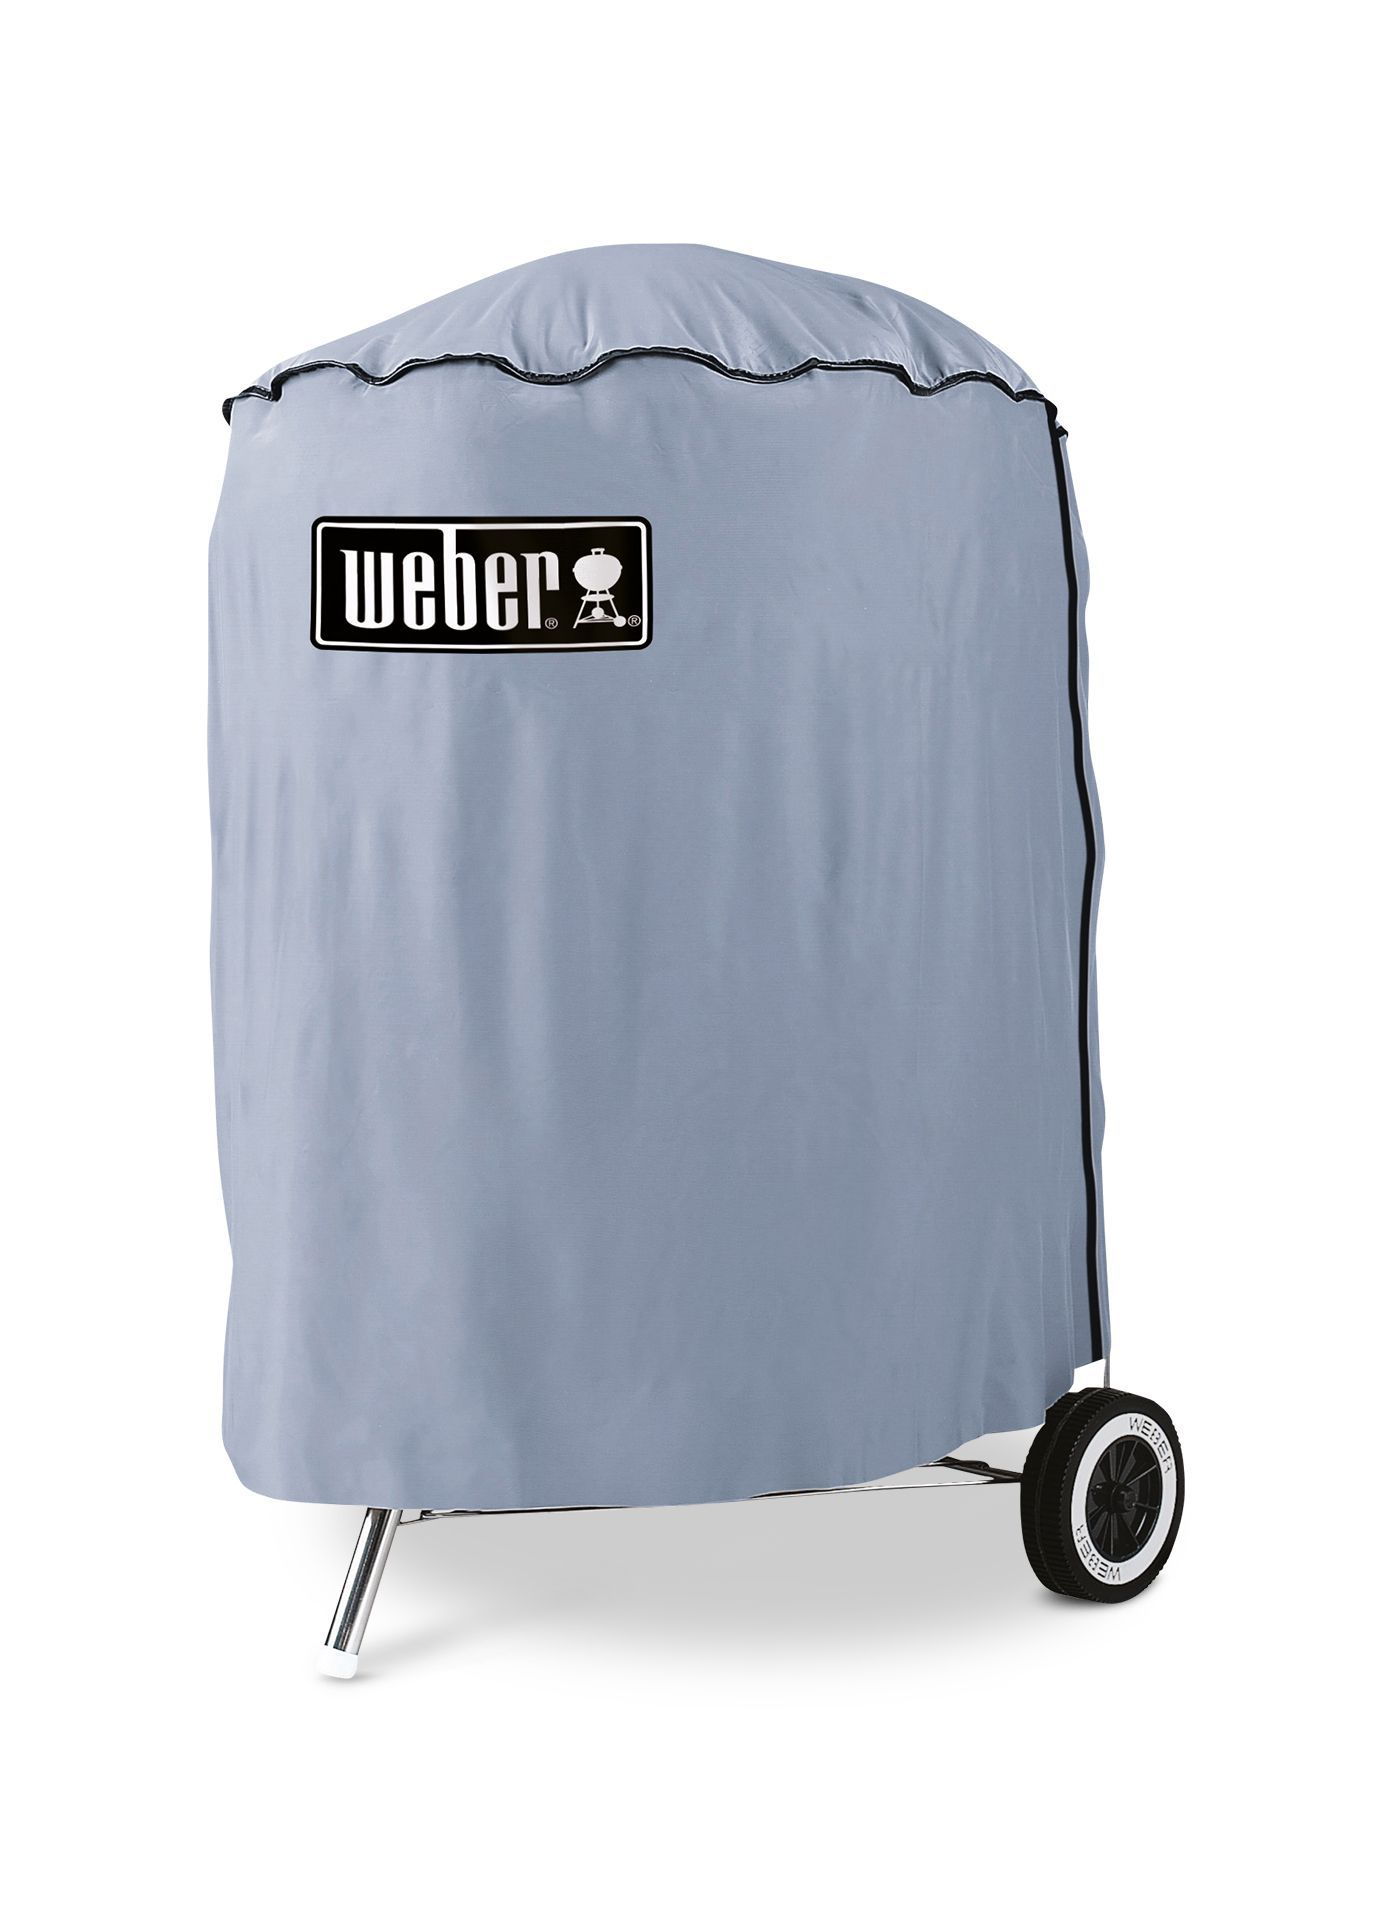 weber 47cm charcoal barbecue cover departments diy at b q. Black Bedroom Furniture Sets. Home Design Ideas